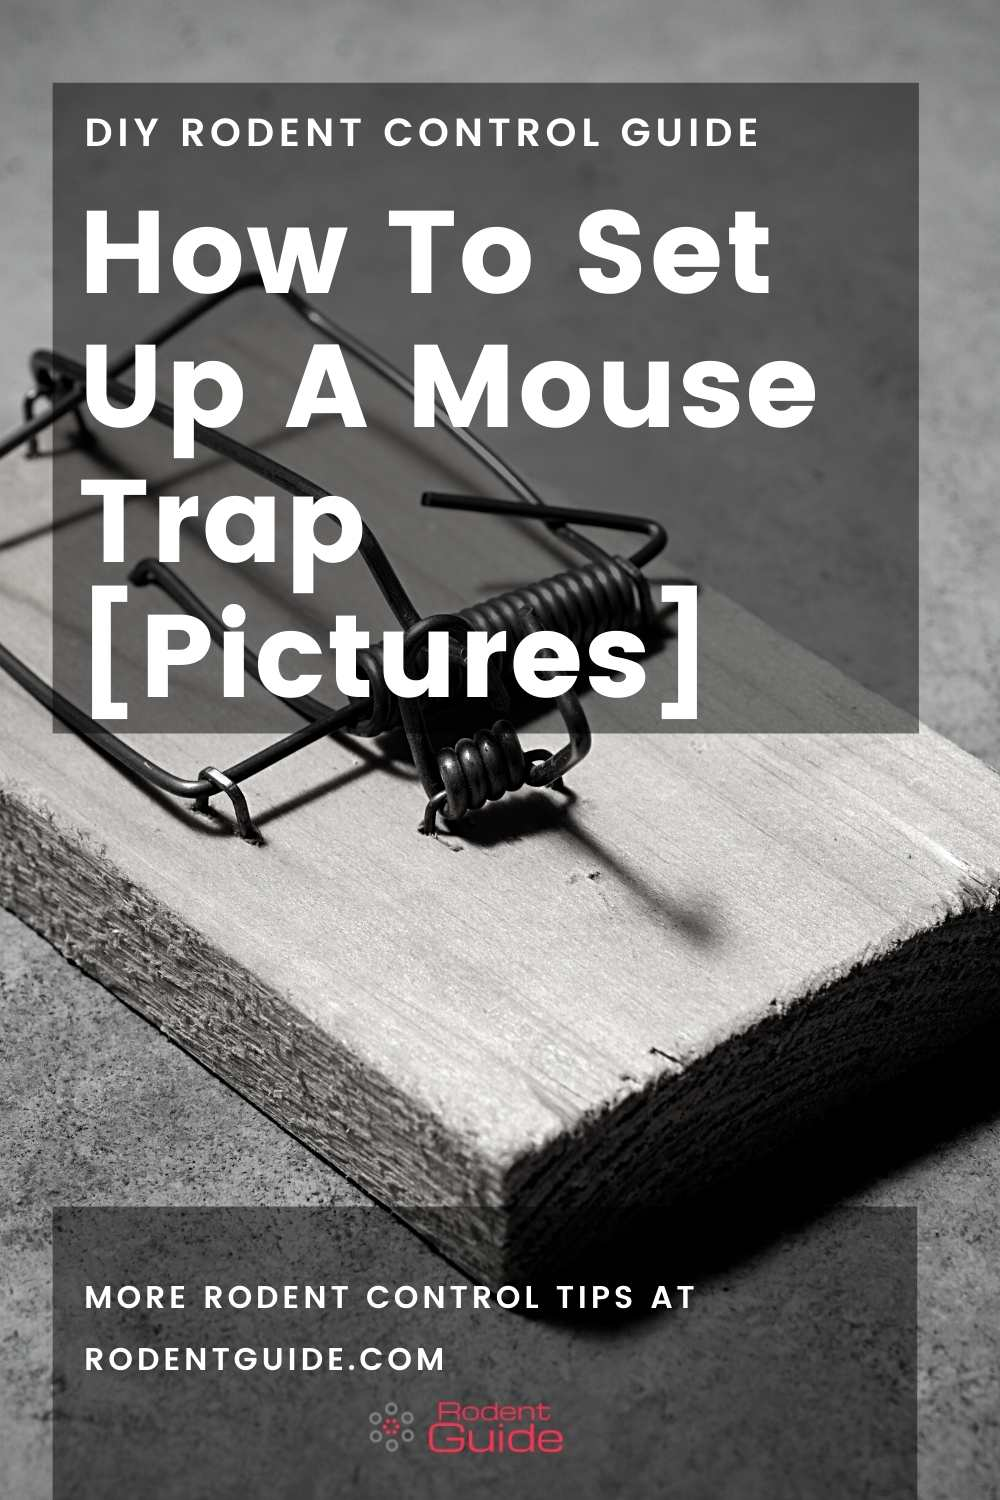 How To Set Up A Mouse Trap